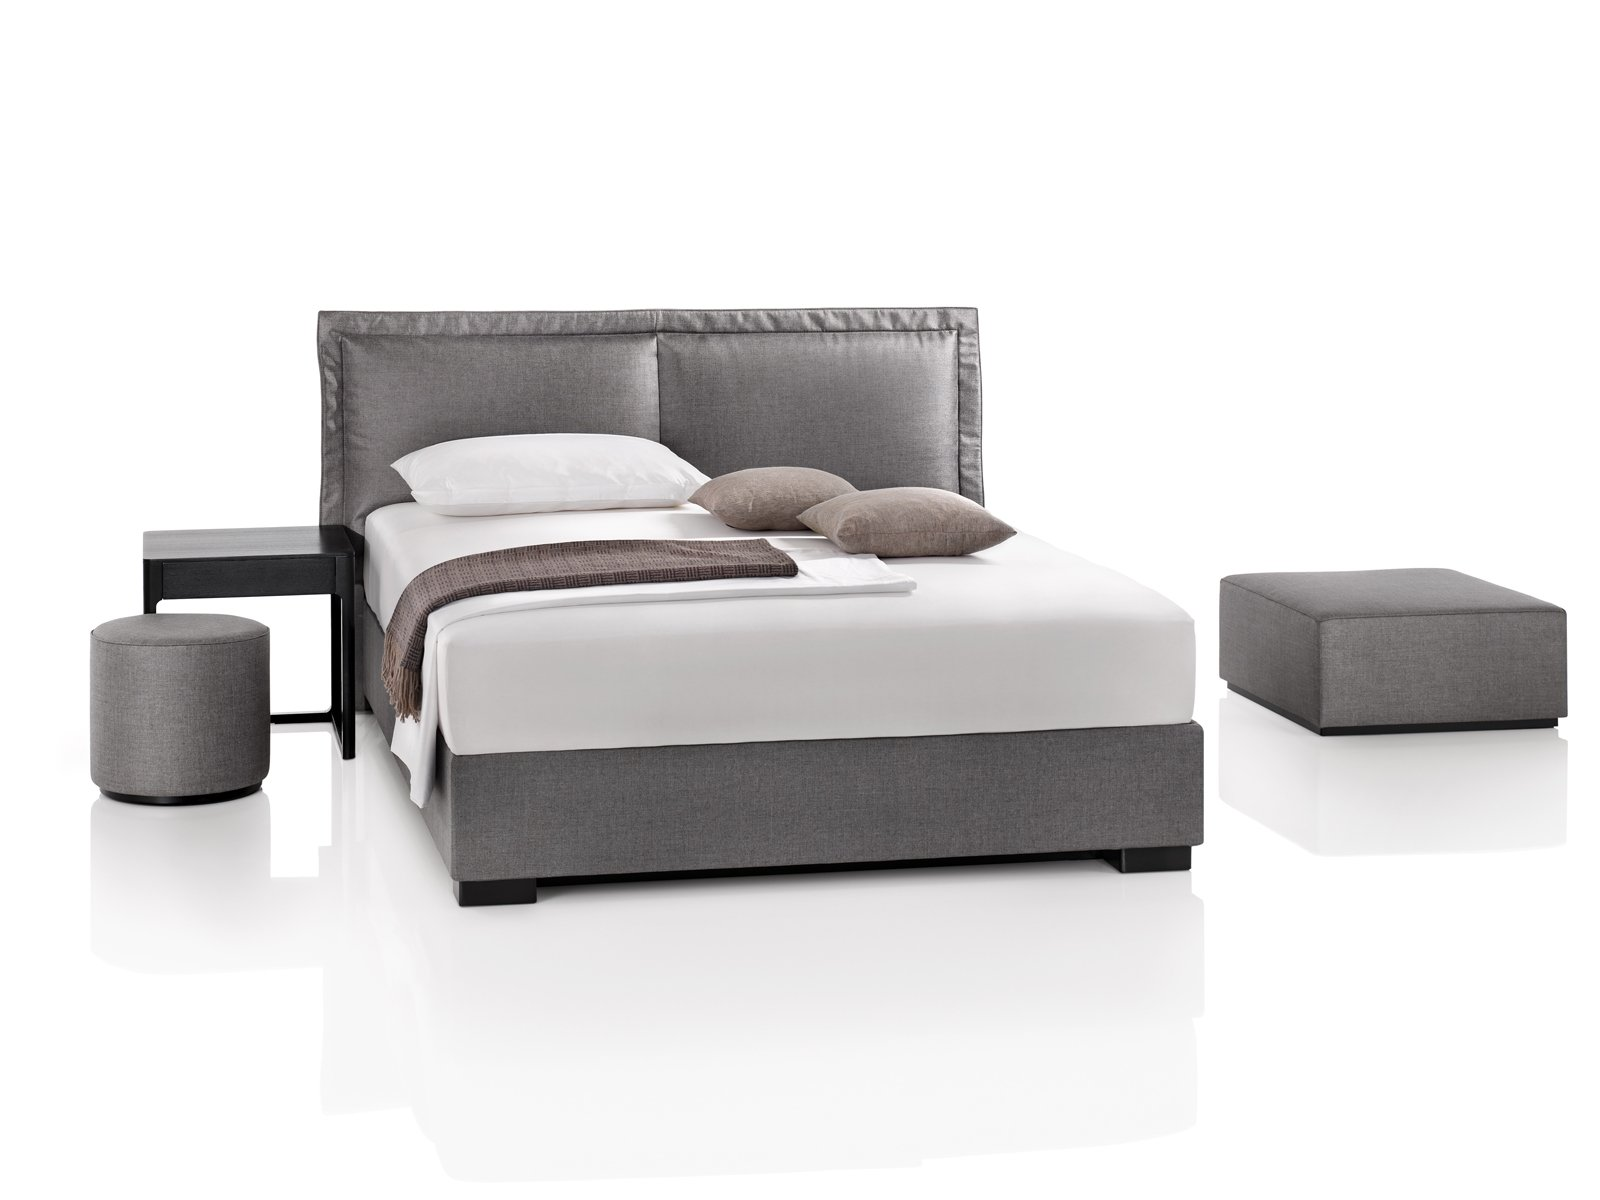 double bed somnus iii oyo by wittmann design paolo piva